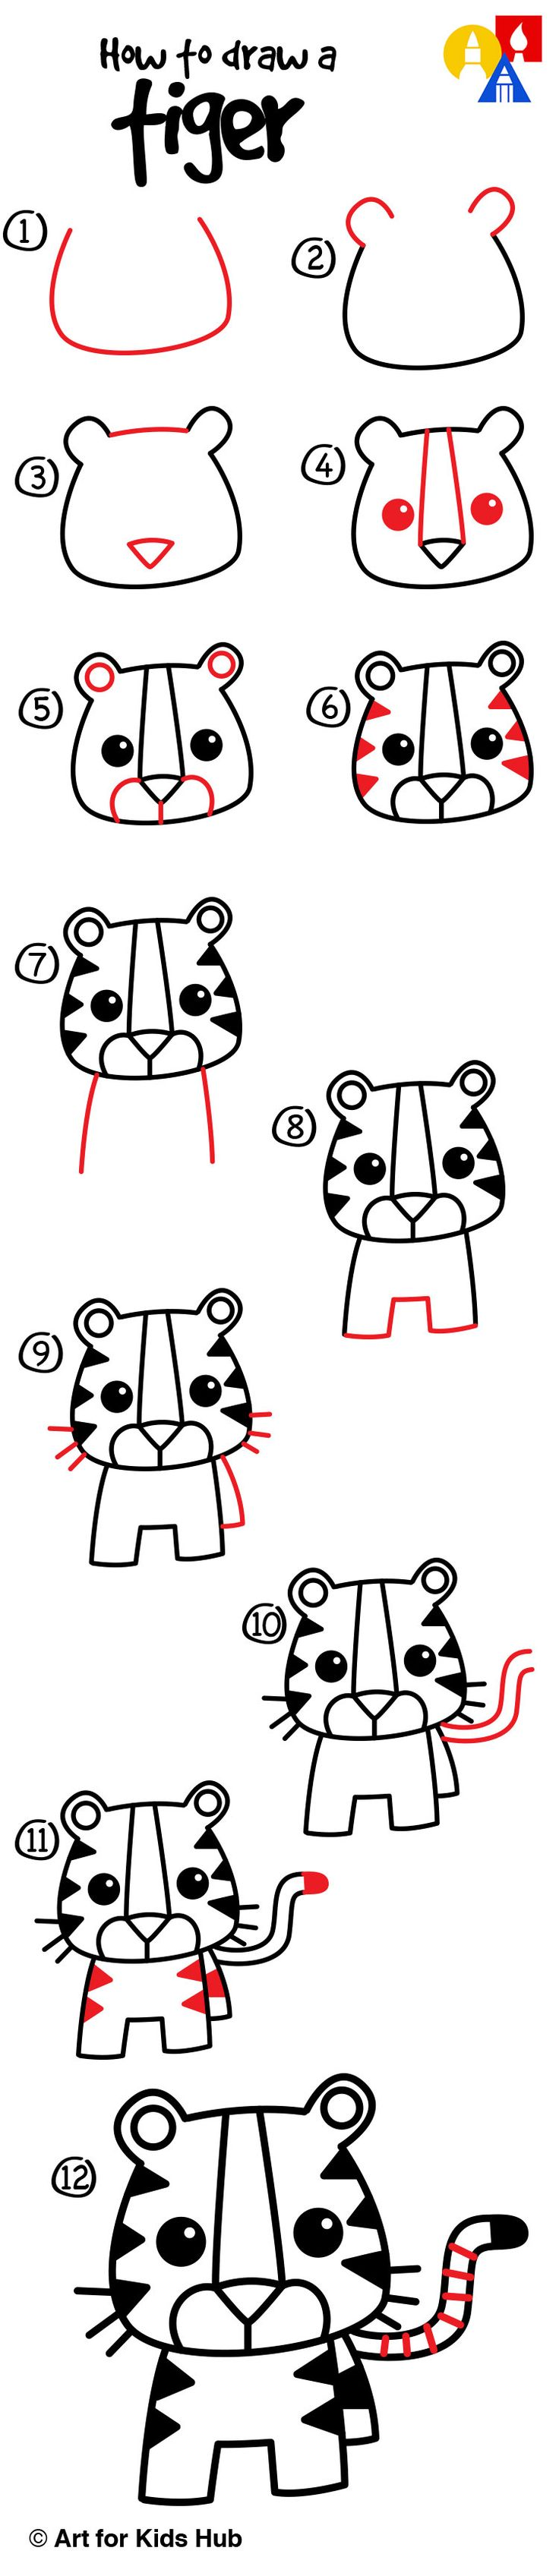 Uncategorized How To Draw A Tiger Shark best 25 how to draw tiger ideas on pinterest choses faciles a cartoon art for kids hub